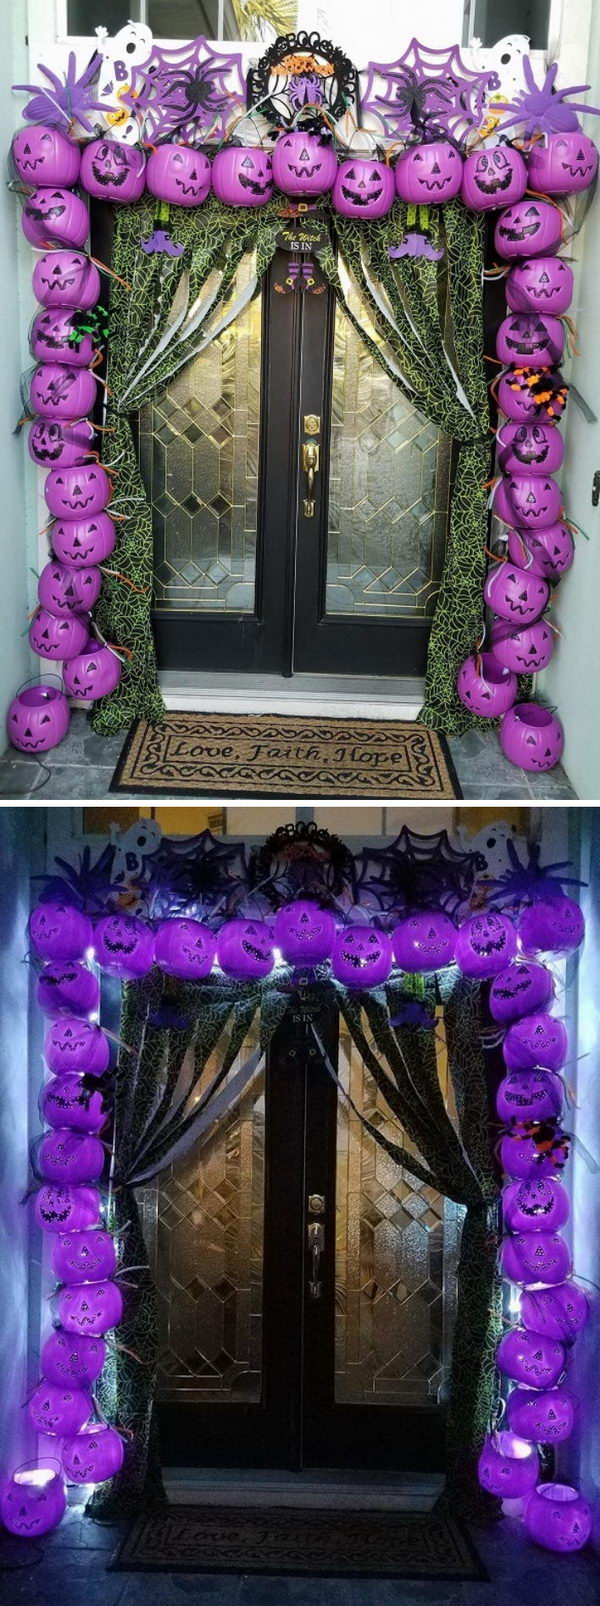 Awesome Plastic Pumpkin Arch Entry Way.